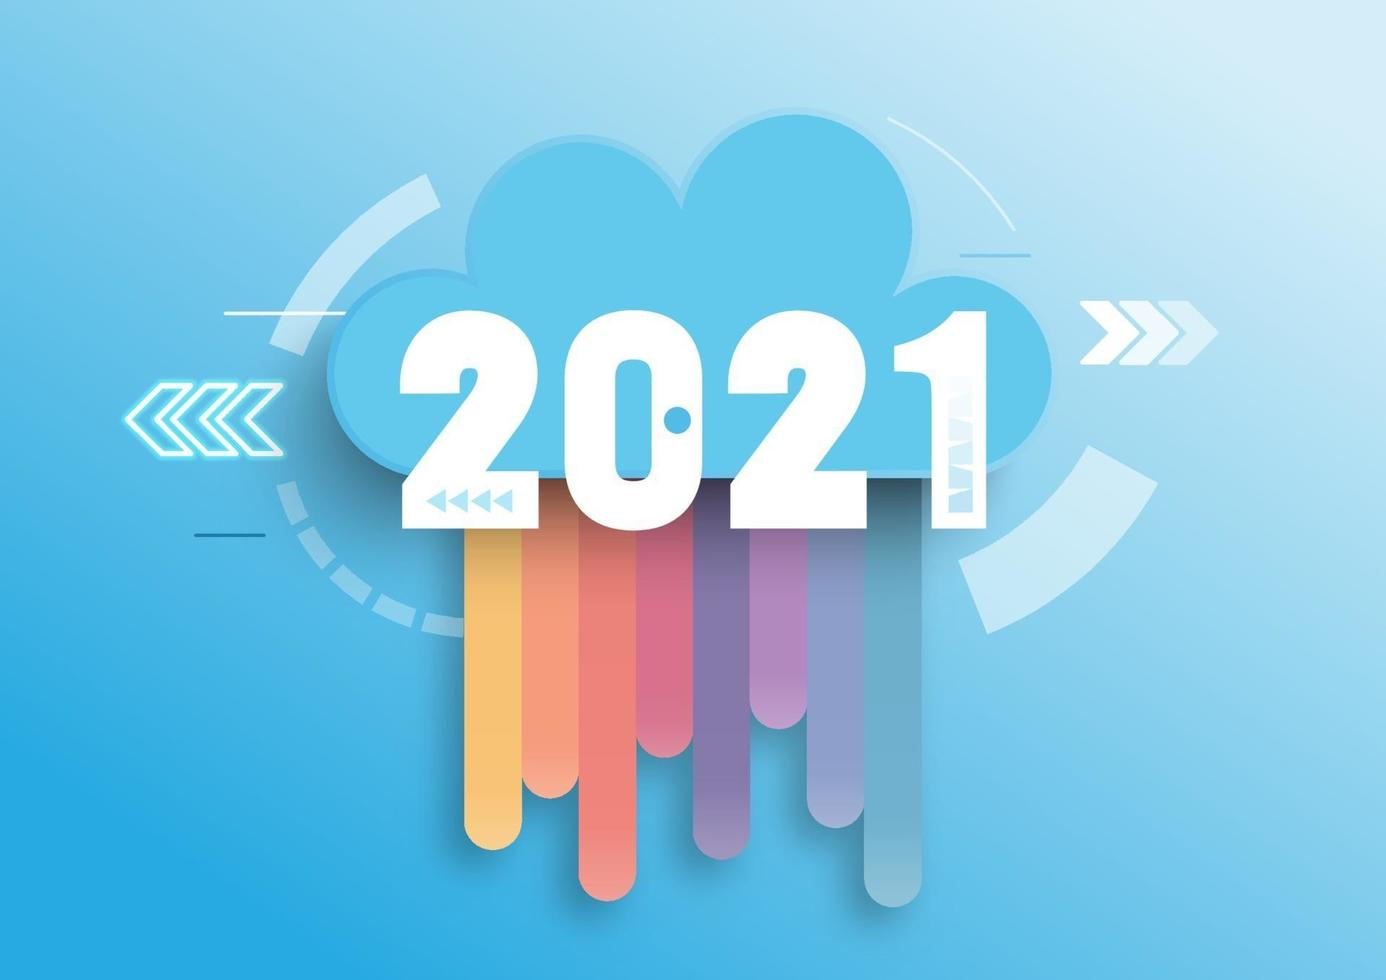 1970474-infographic-concept-2021-year-hot-trends-prospects-in-cloud-computing-services-and-technologies-big-data-storage-communication-vector-illustration-vectoriel